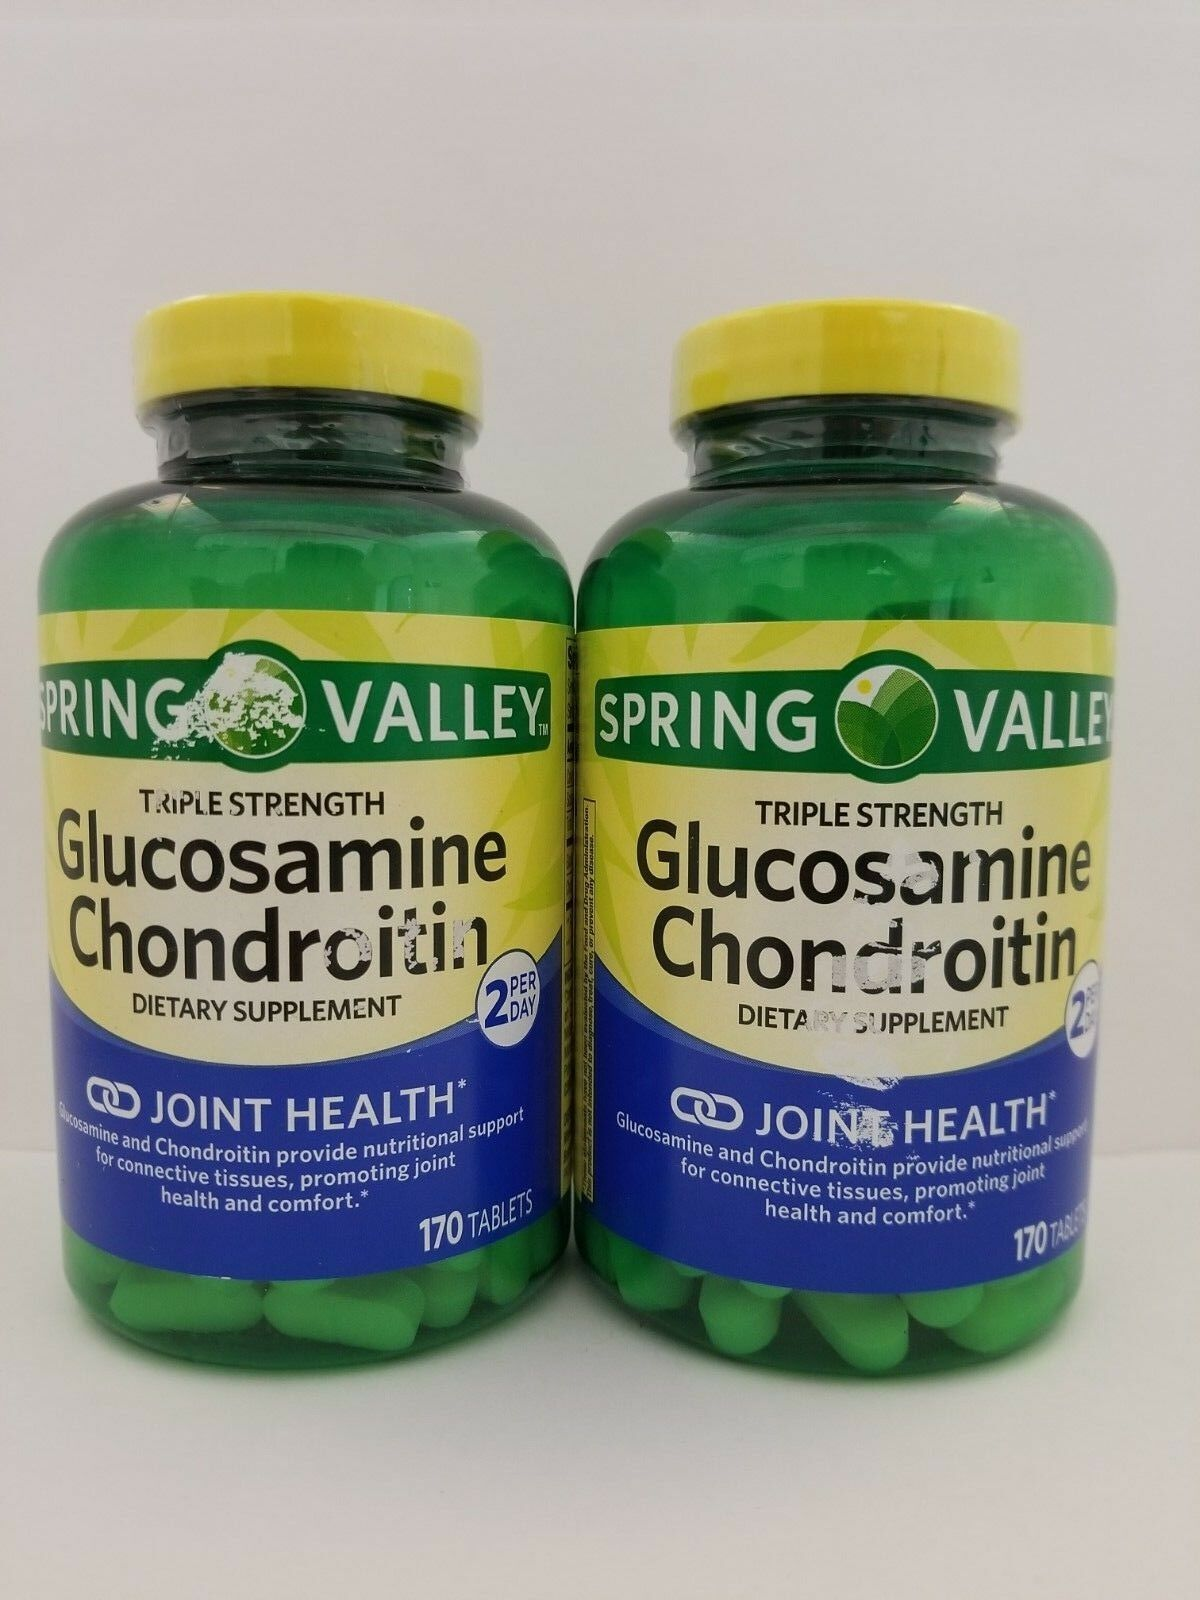 Spring Valley Triple Strength Glucosamine Chondroitin 170 Ta